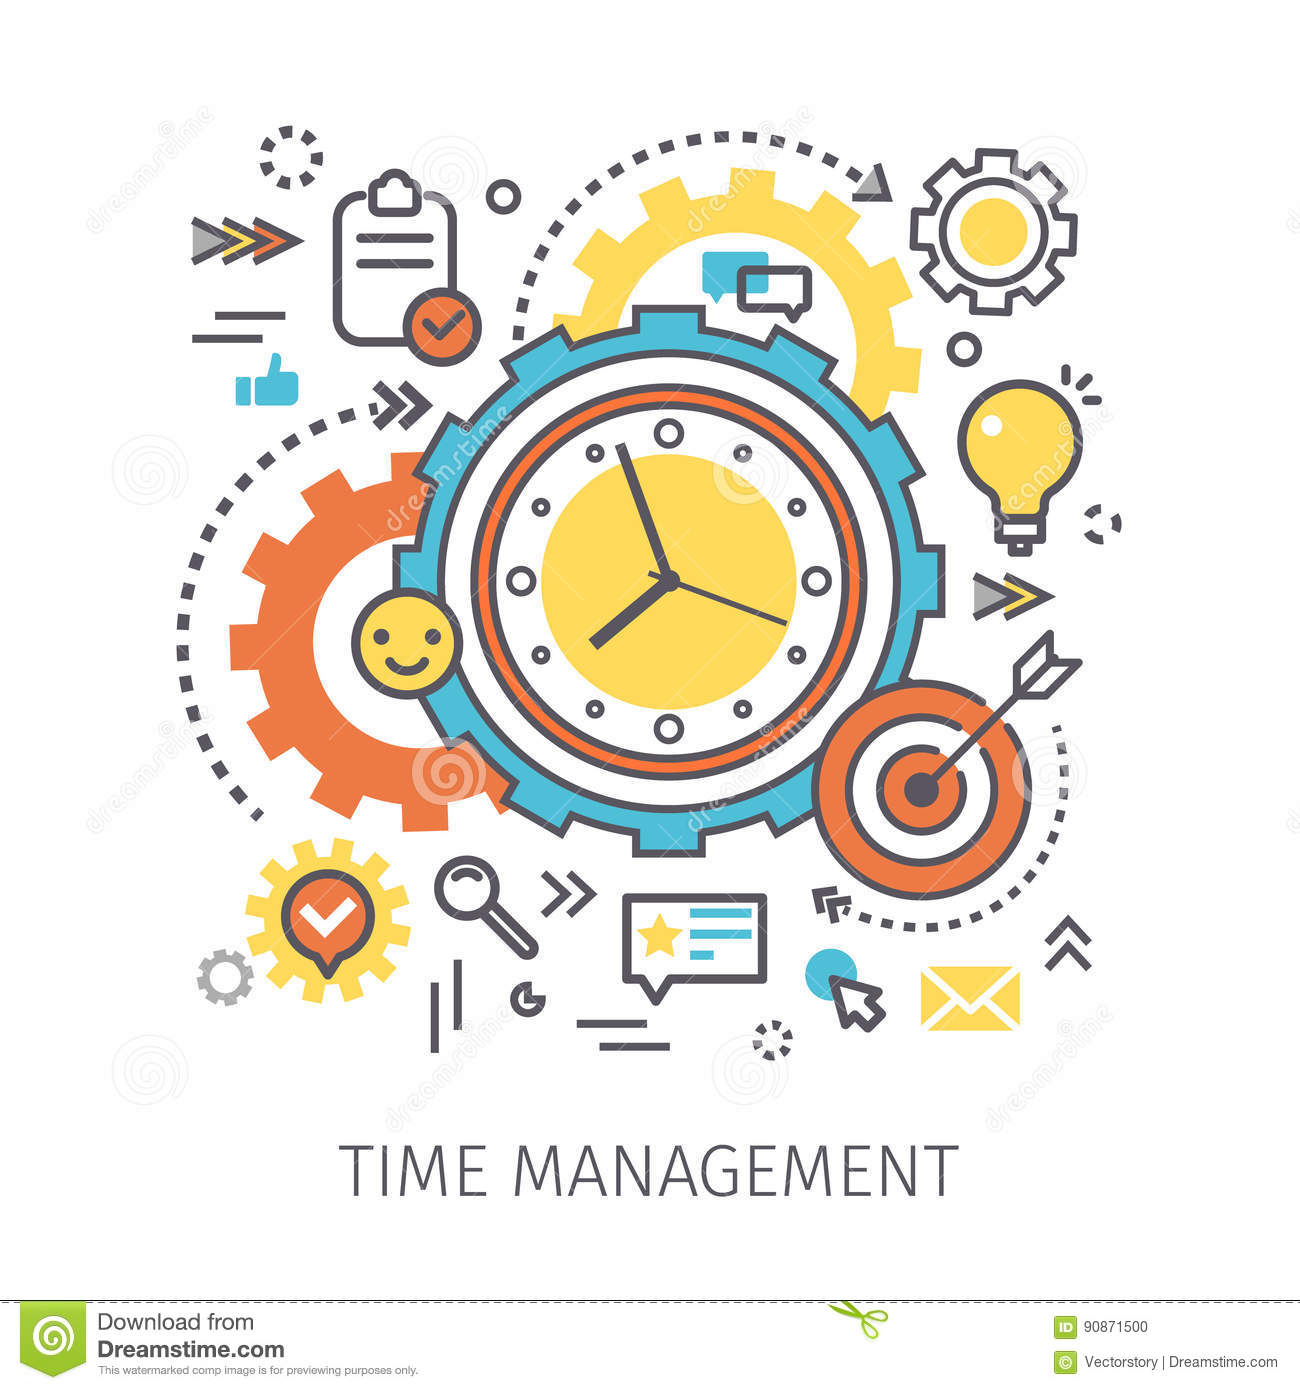 is management an art How management is an art to manage effectively, one must have not only the necessary abilities to lead but also a set of critical skills acquired through time, experience, and practice the art of managing is a personal creative attribute of the manager, which is more often than not, enriched by education, training, experience.